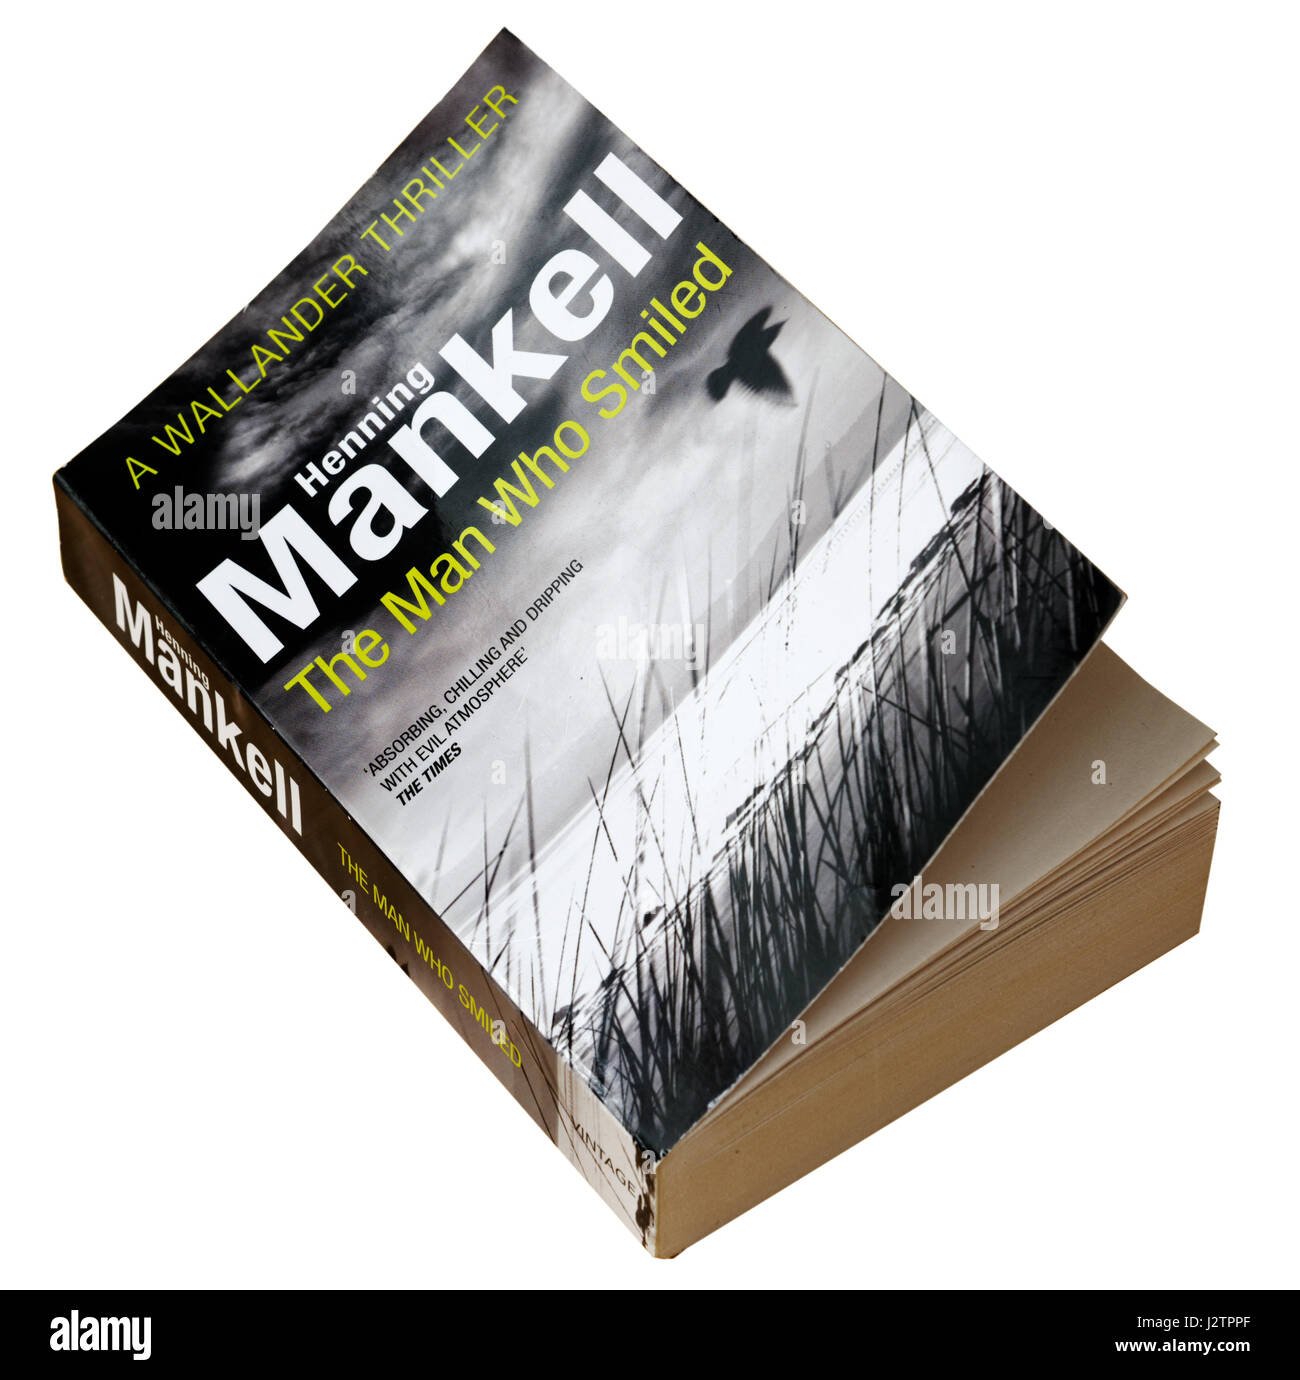 The Man Who Smiled by Henning Mankell - A detective Wallander story - Stock Image